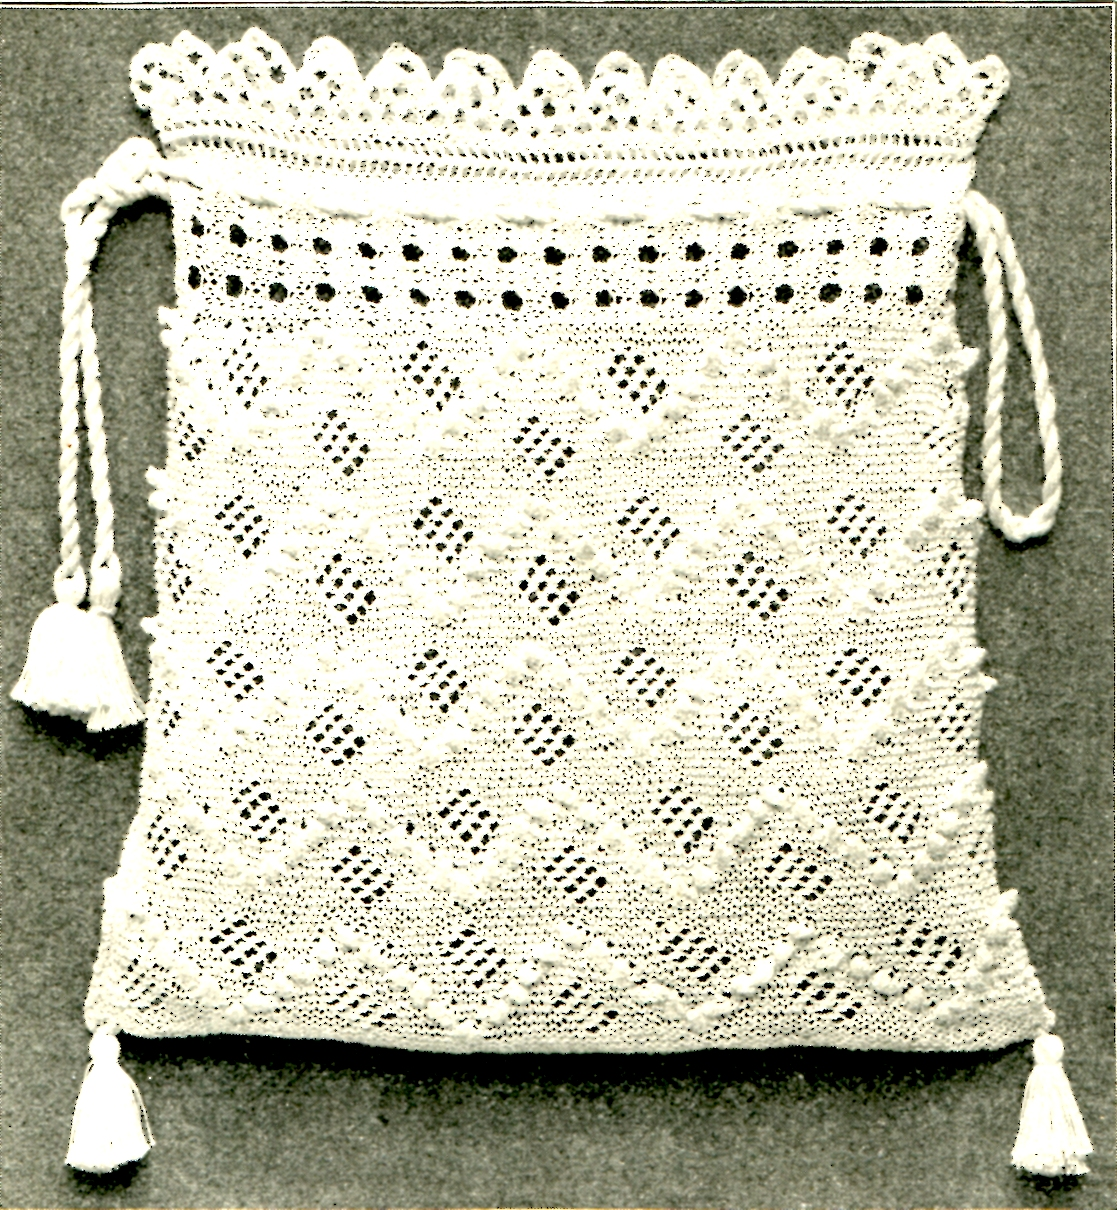 Vintage Knitted Bag Pattern Archives - Vintage Crafts and More